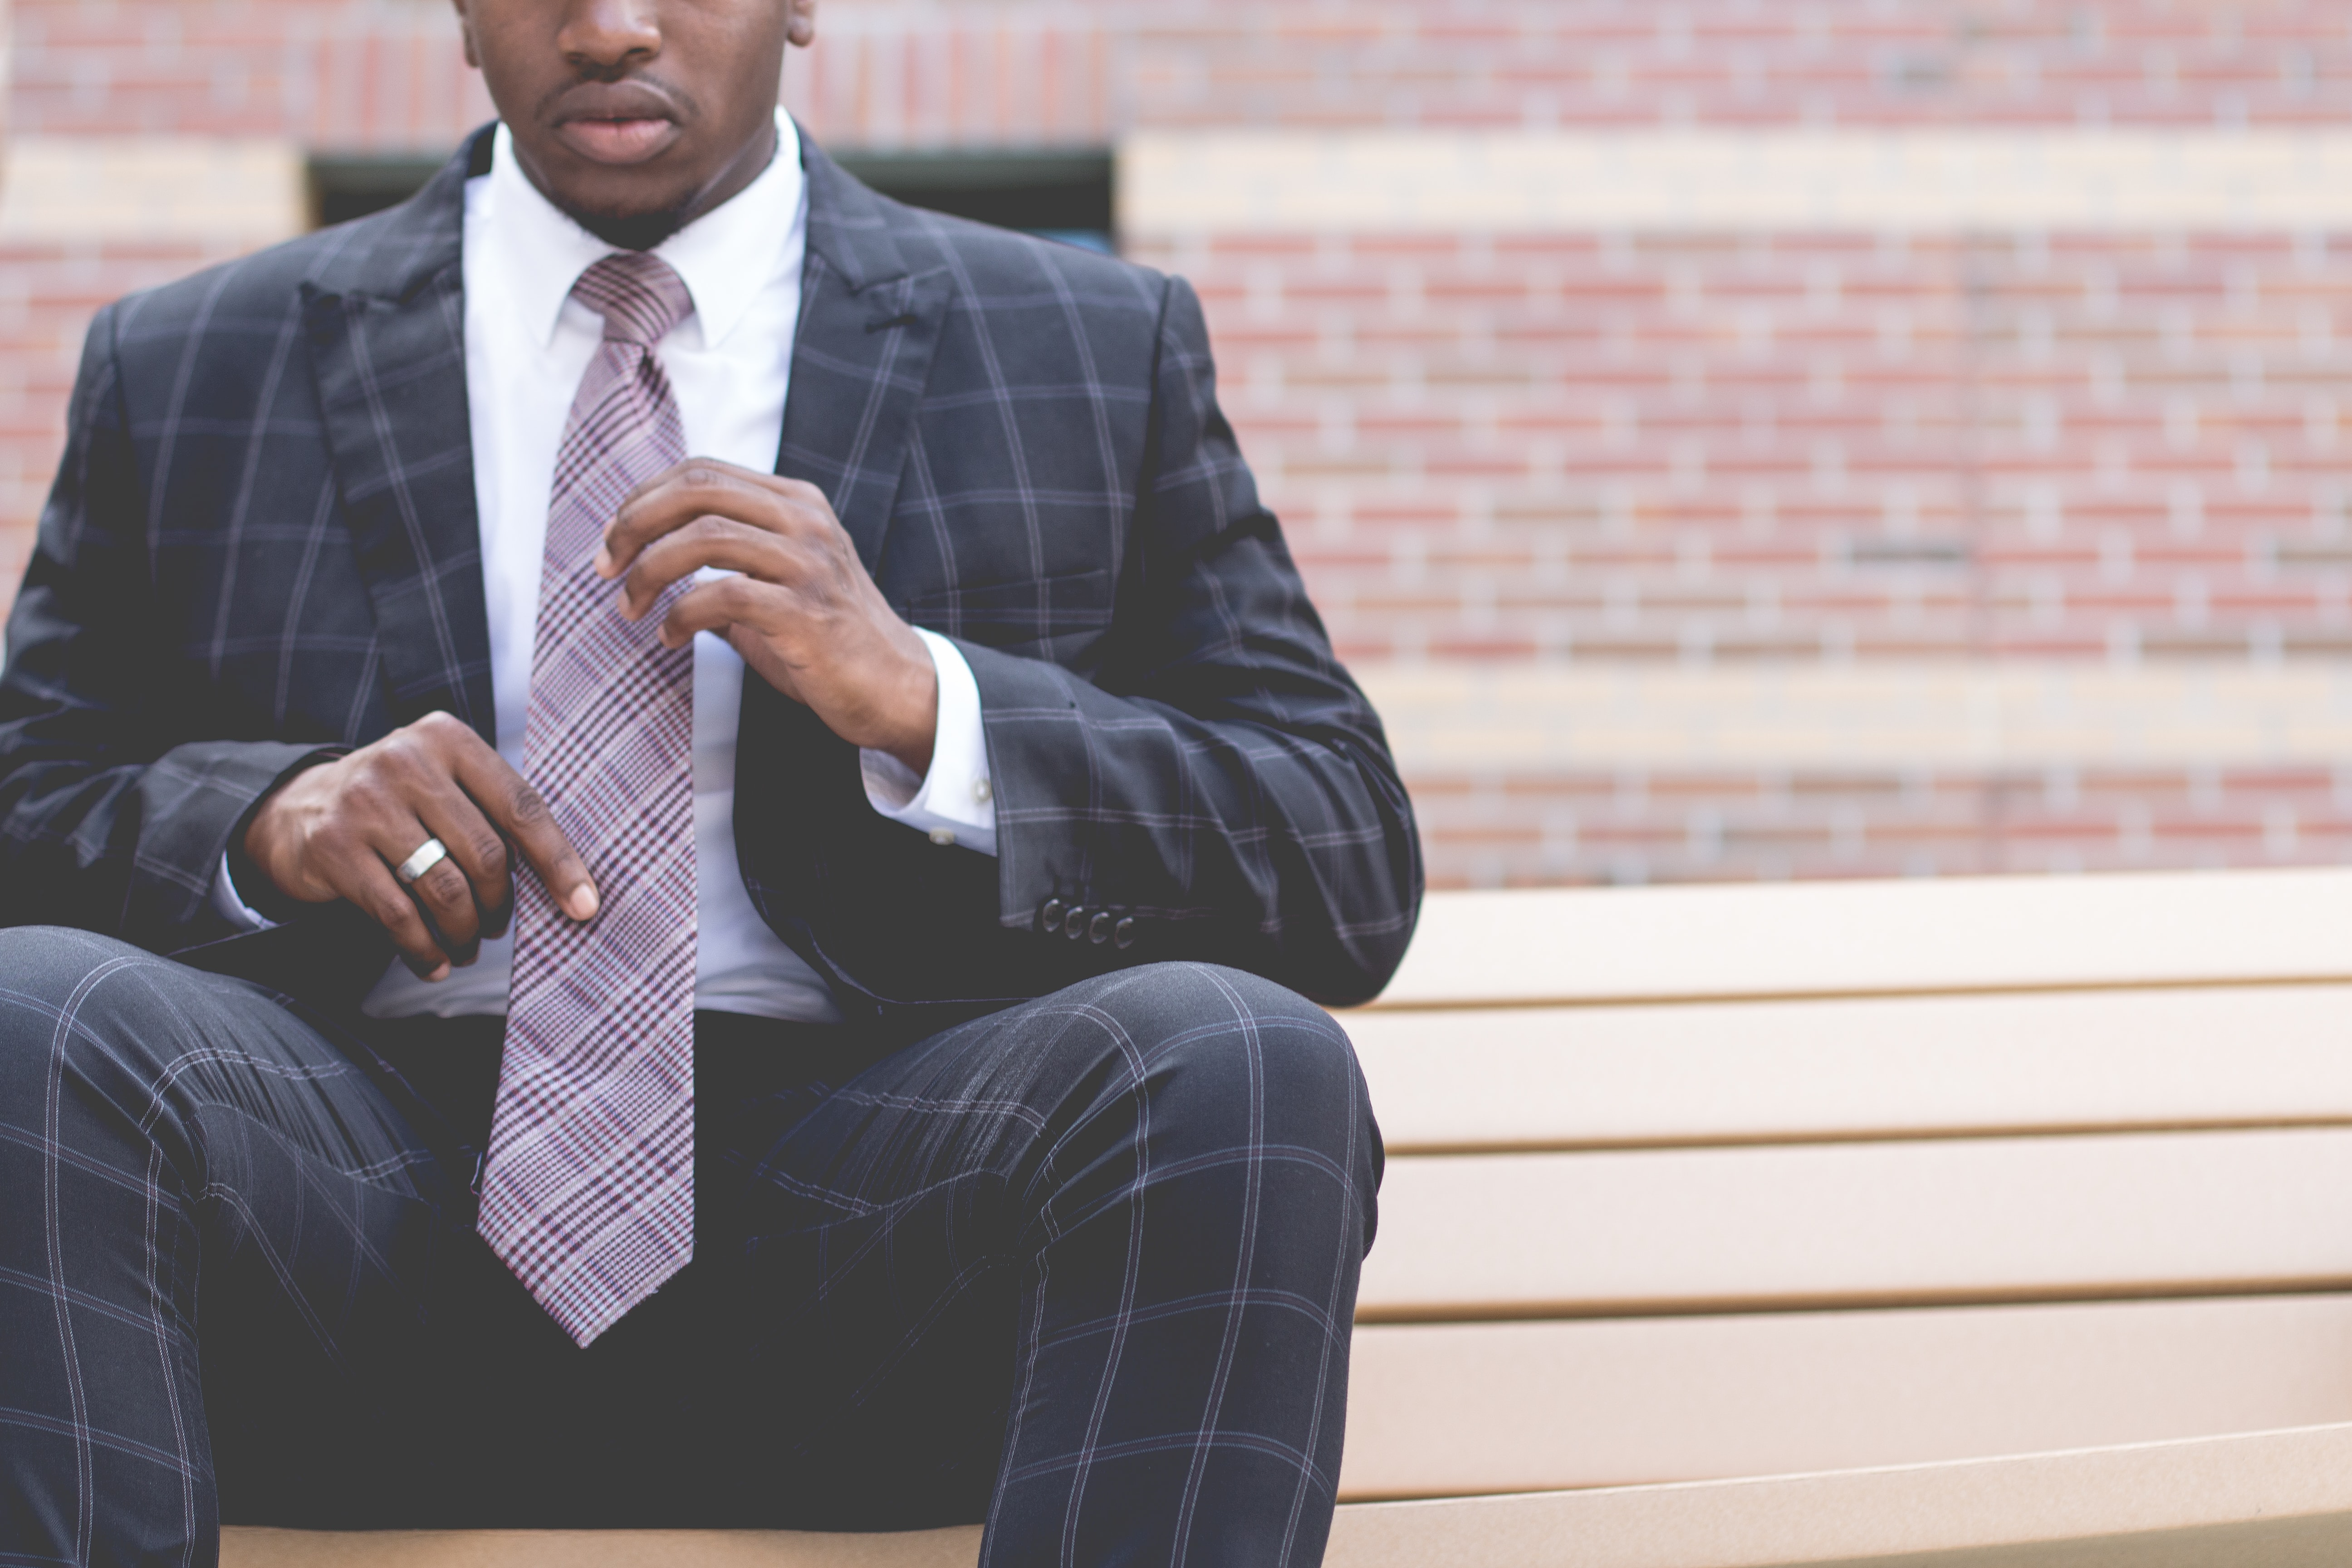 A man in a plaid suit sitting on a bench